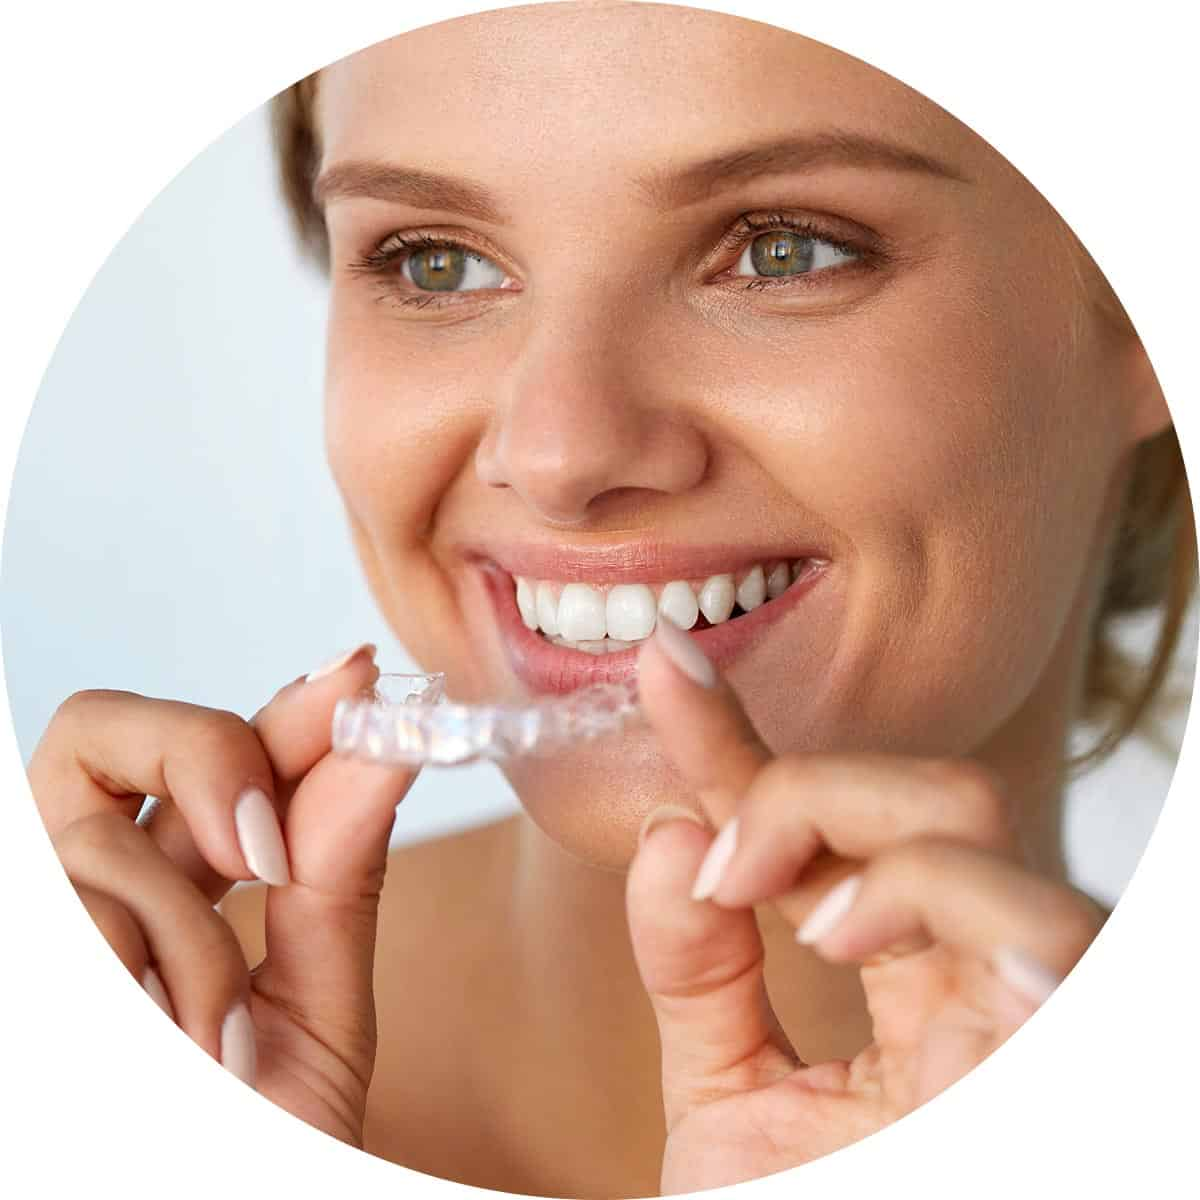 Invisalign clear aligner being inserted by patient